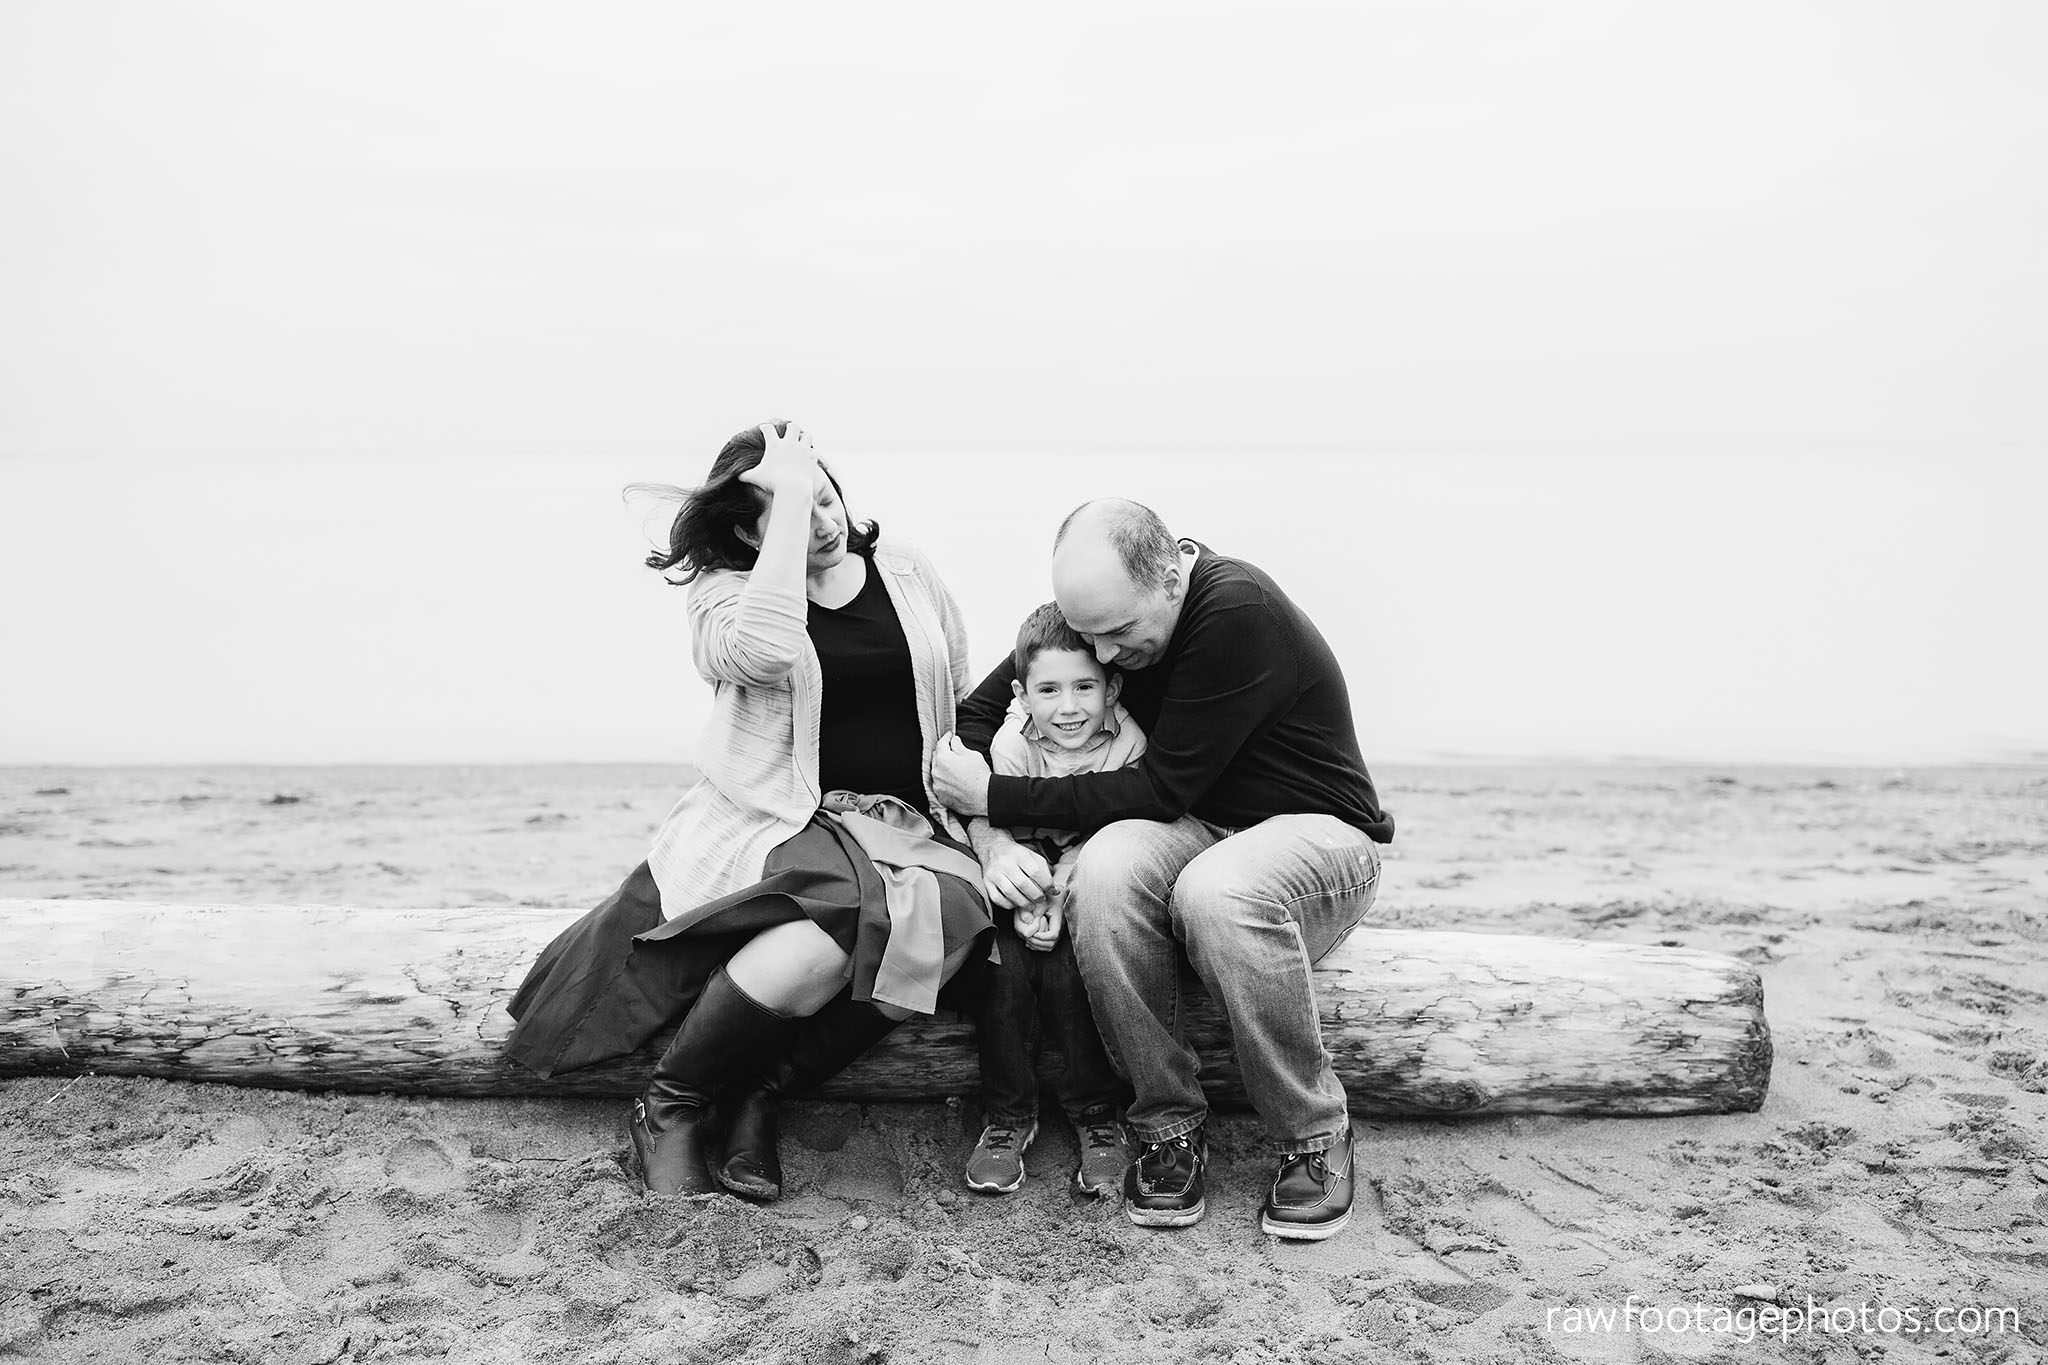 london_ontario_family_photographer-port_stanley_photography-raw_footage_photography-family_photos-beach_photos-fall_family_photos-lifestyle_family_photography-candid_photographer001.jpg